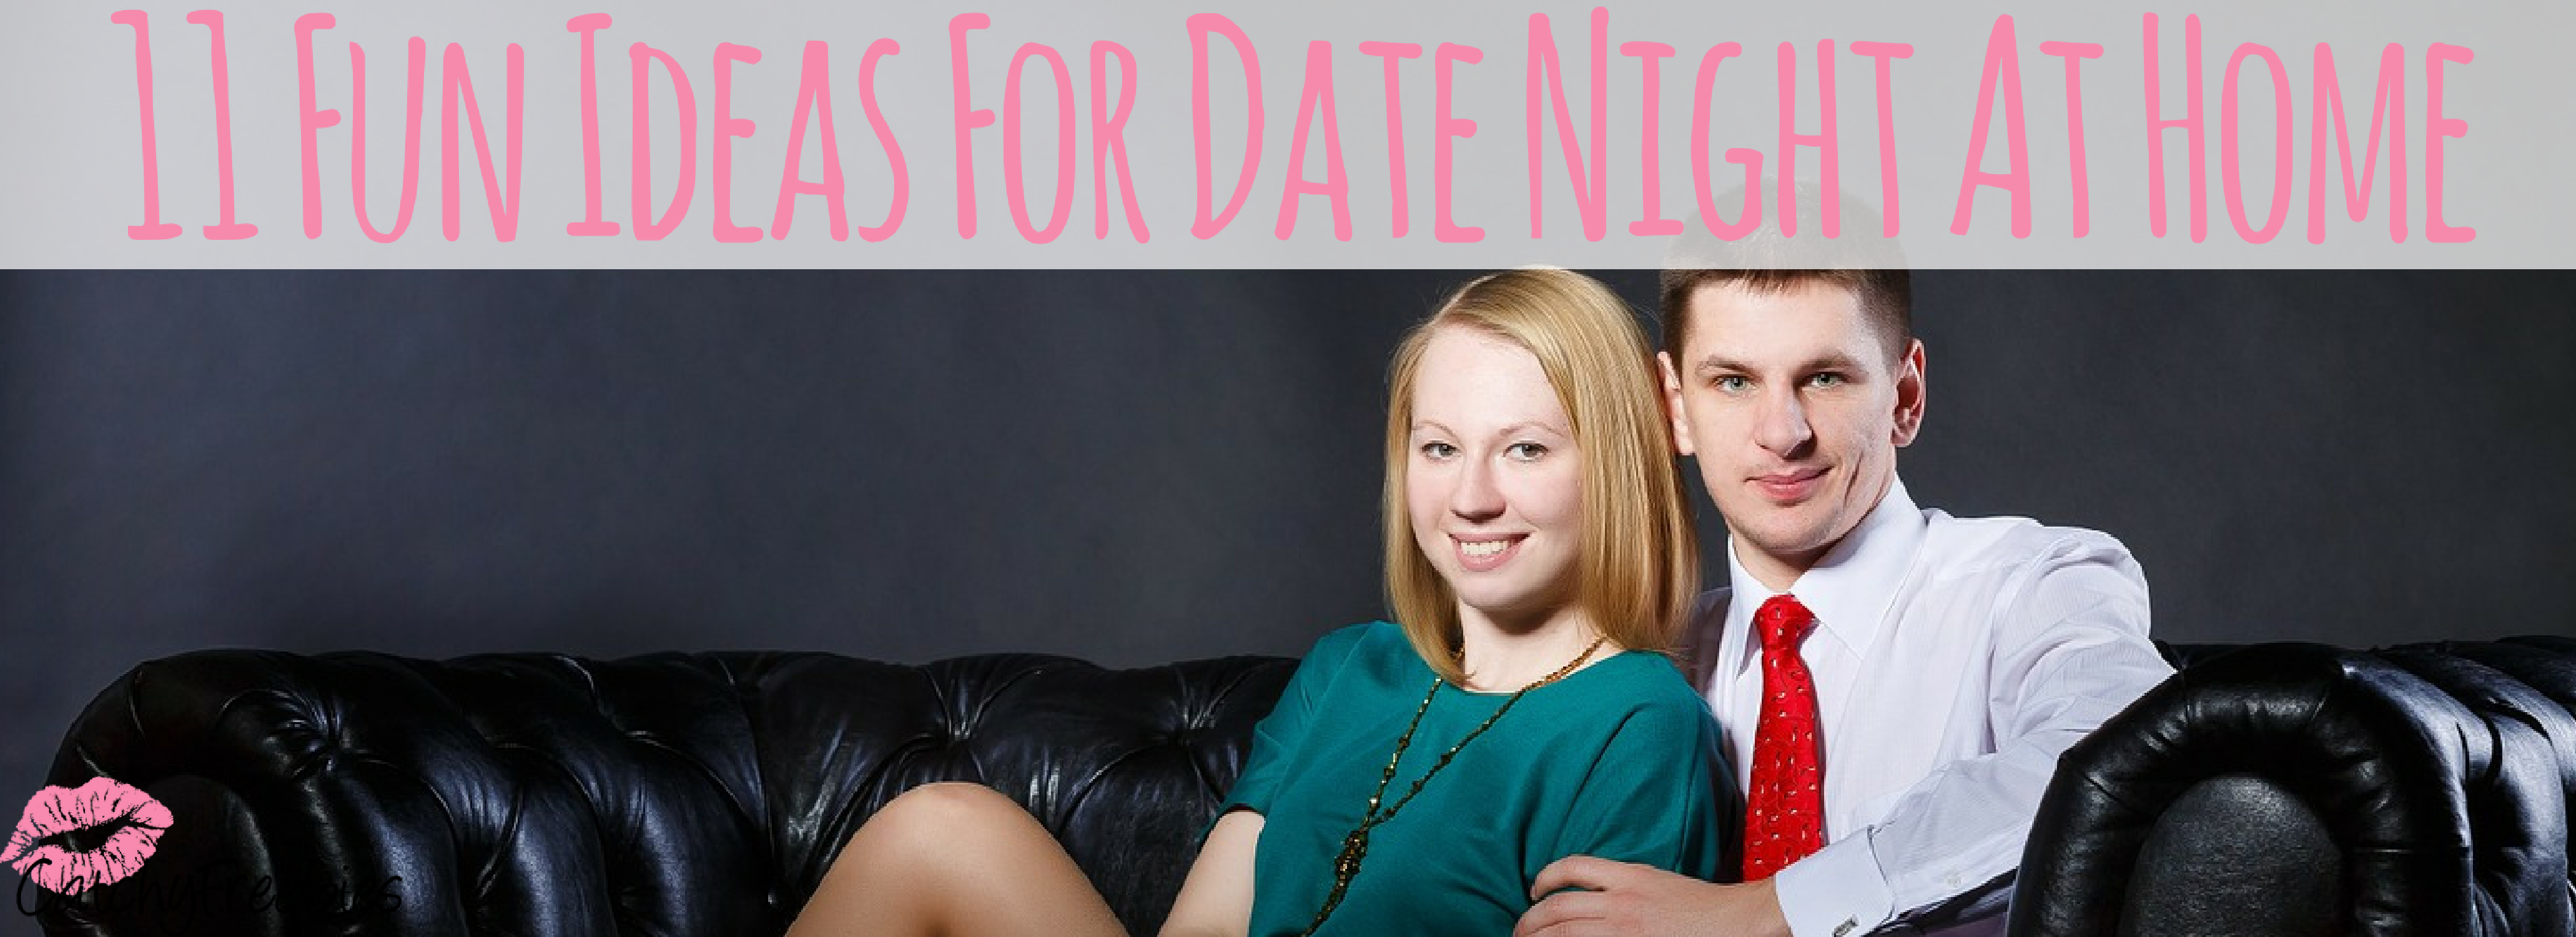 11 Fun Ideas For Date Night At Home